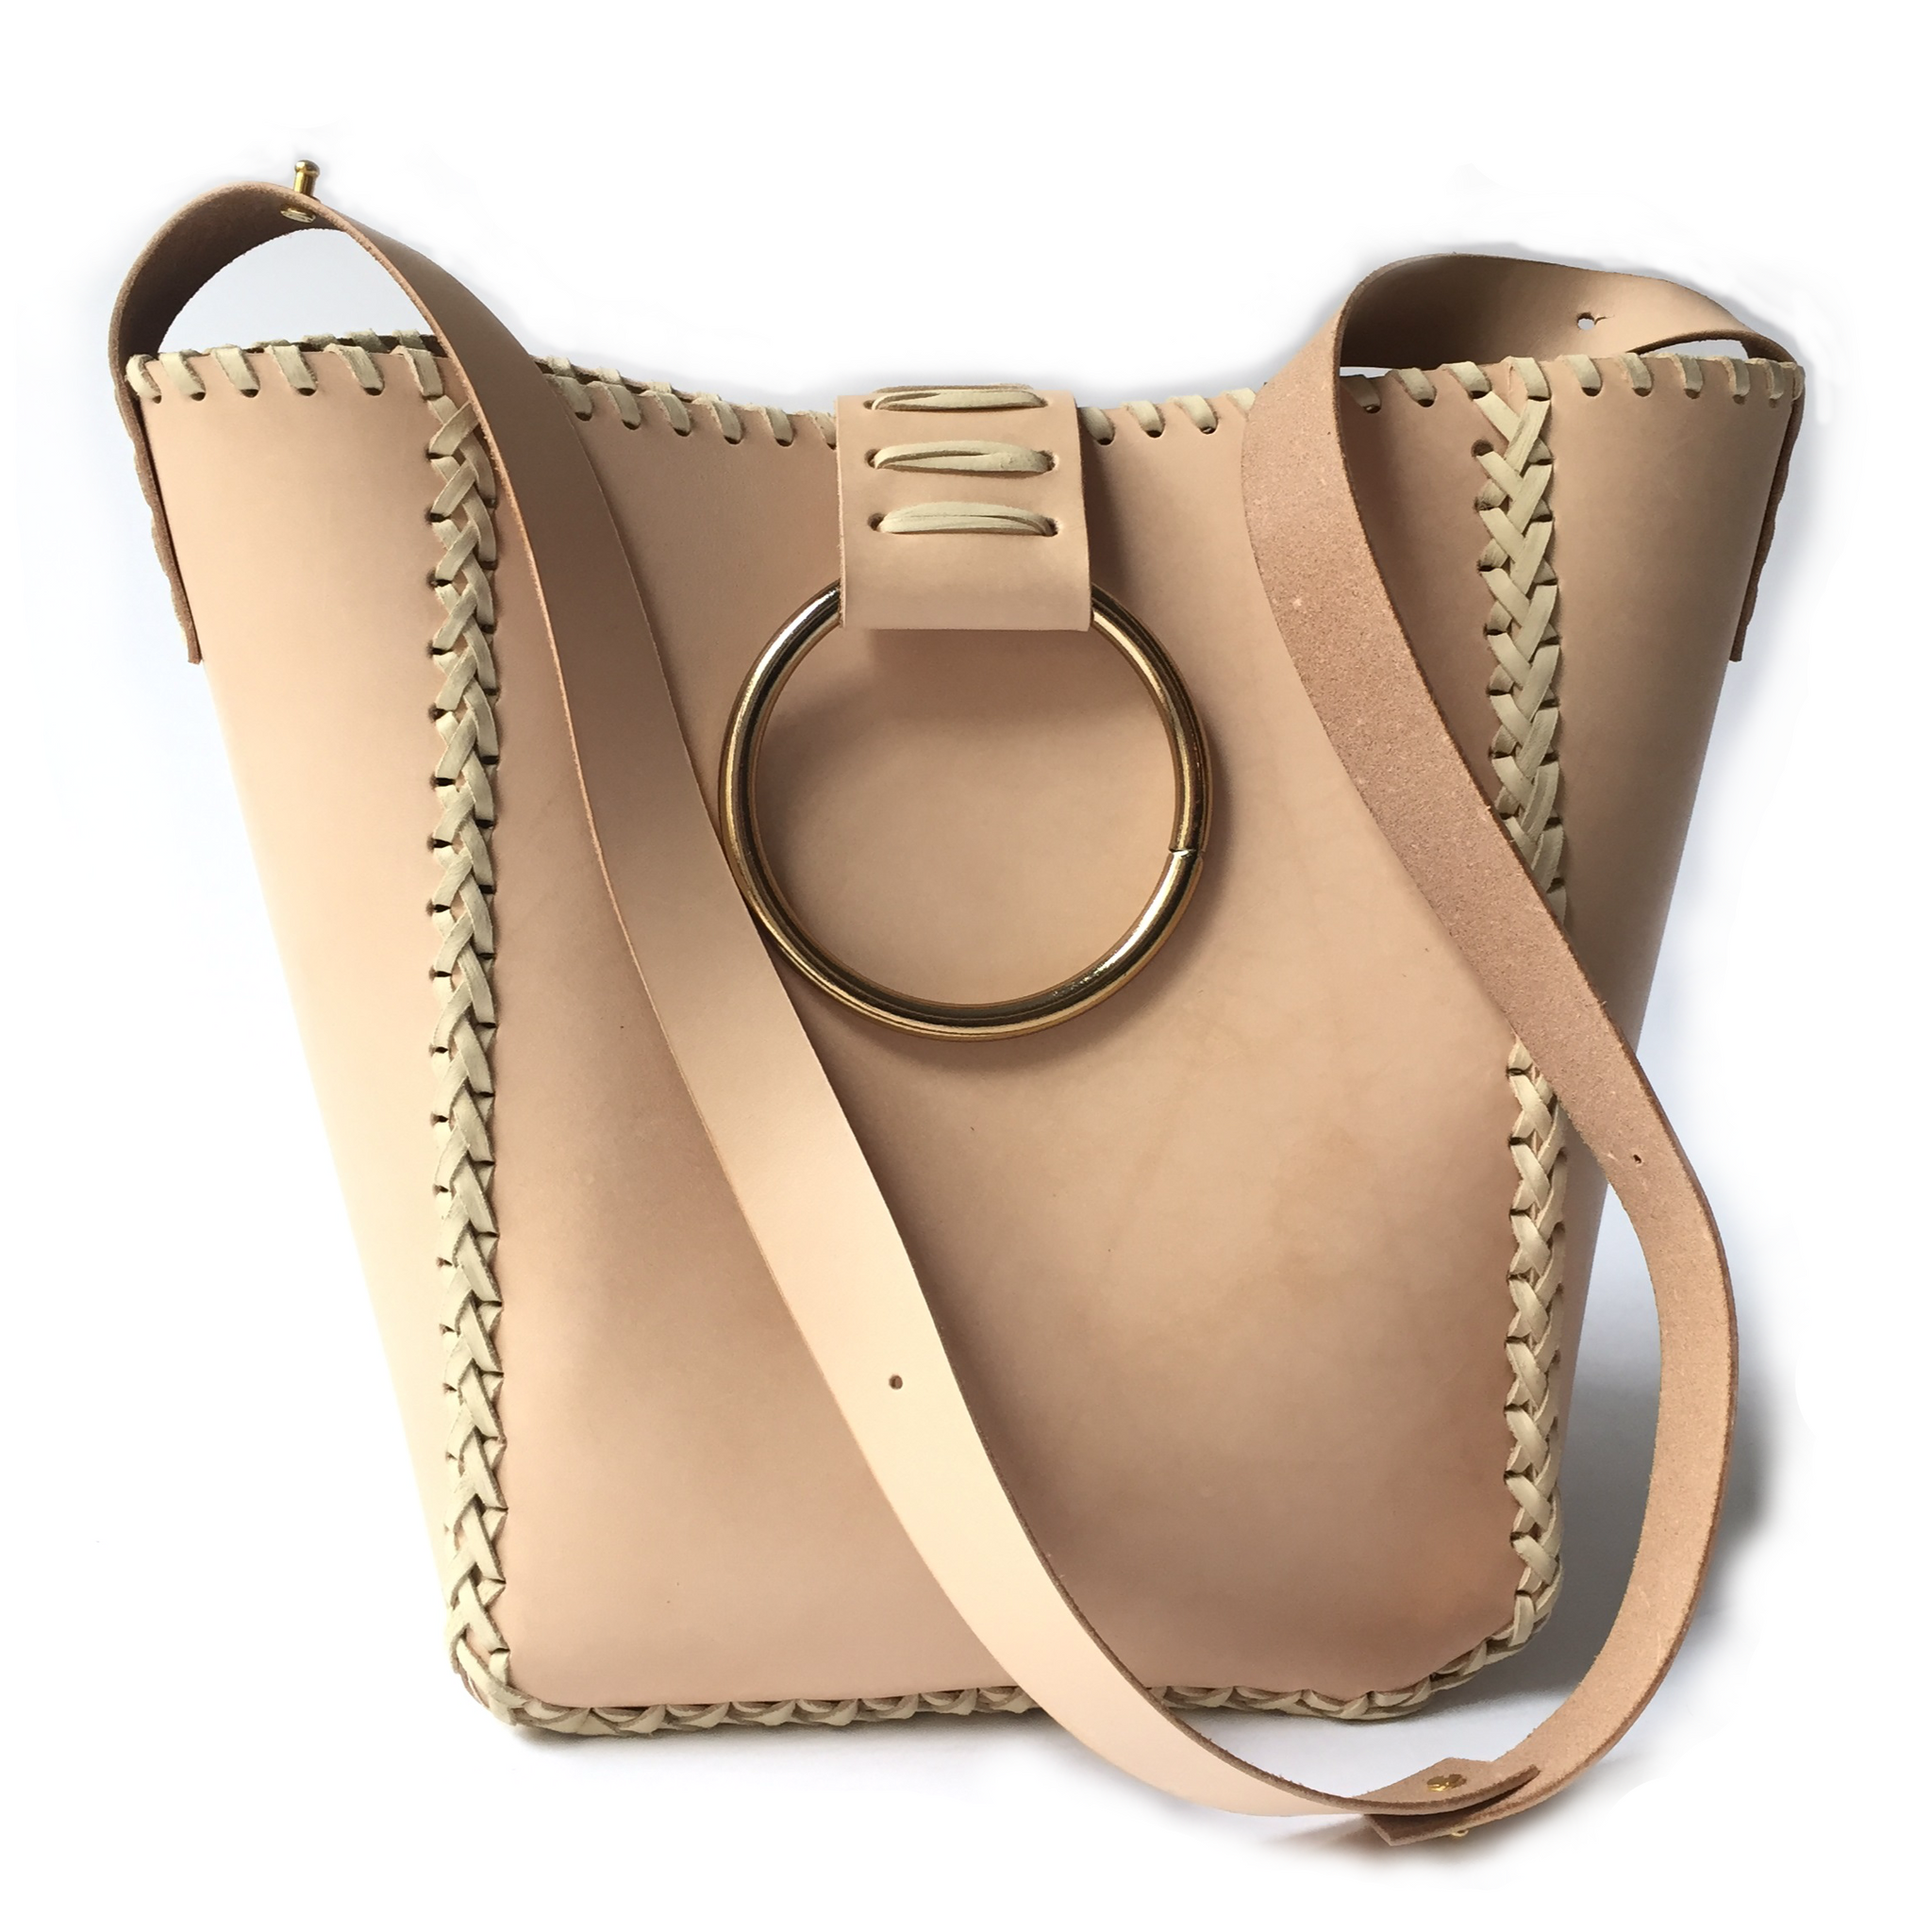 LEATHER KNOCKER TOTE BAG WITH ADJUSTABLE SHOULDER STRAP